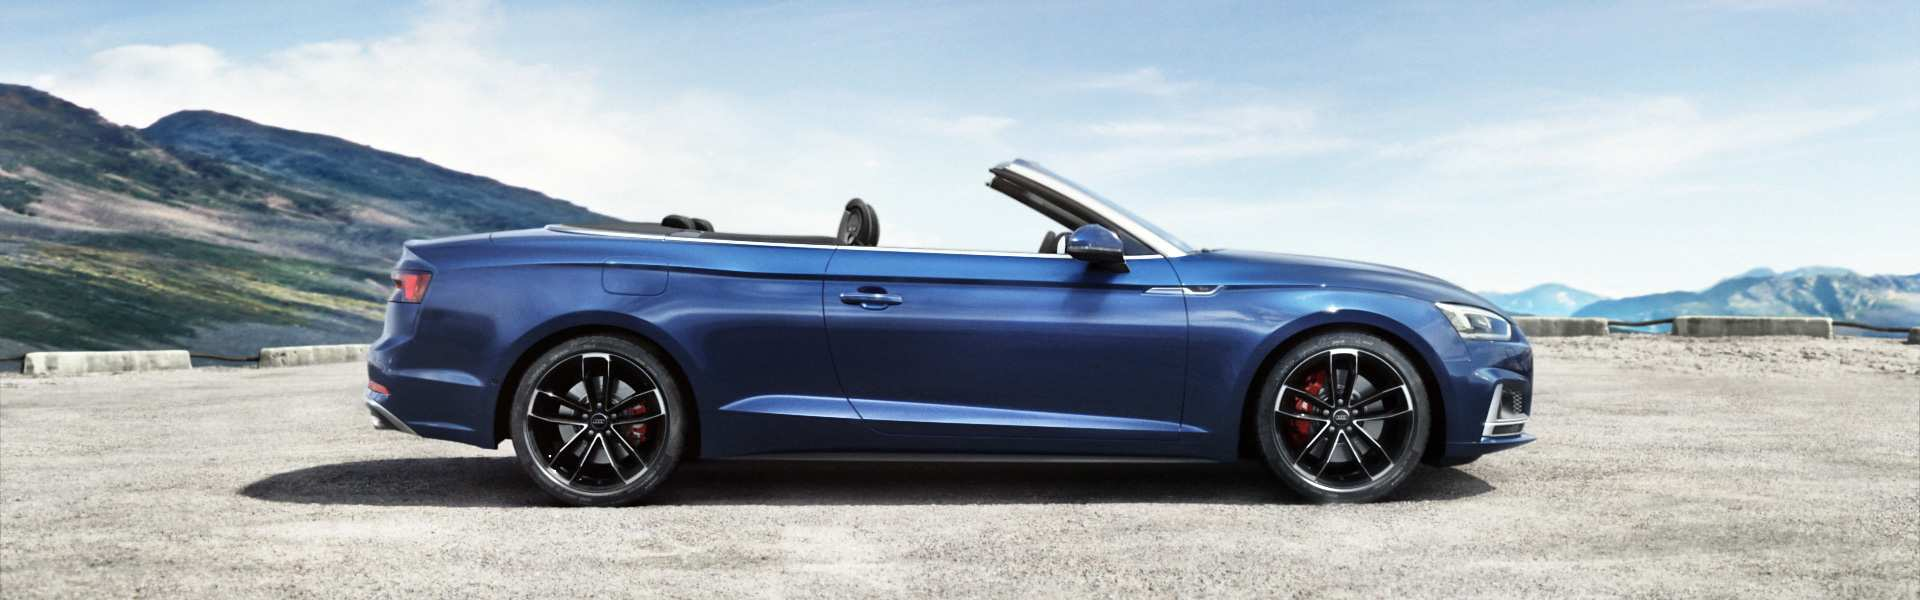 45 The Best 2019 Audi S5 Cabriolet Performance And New Engine